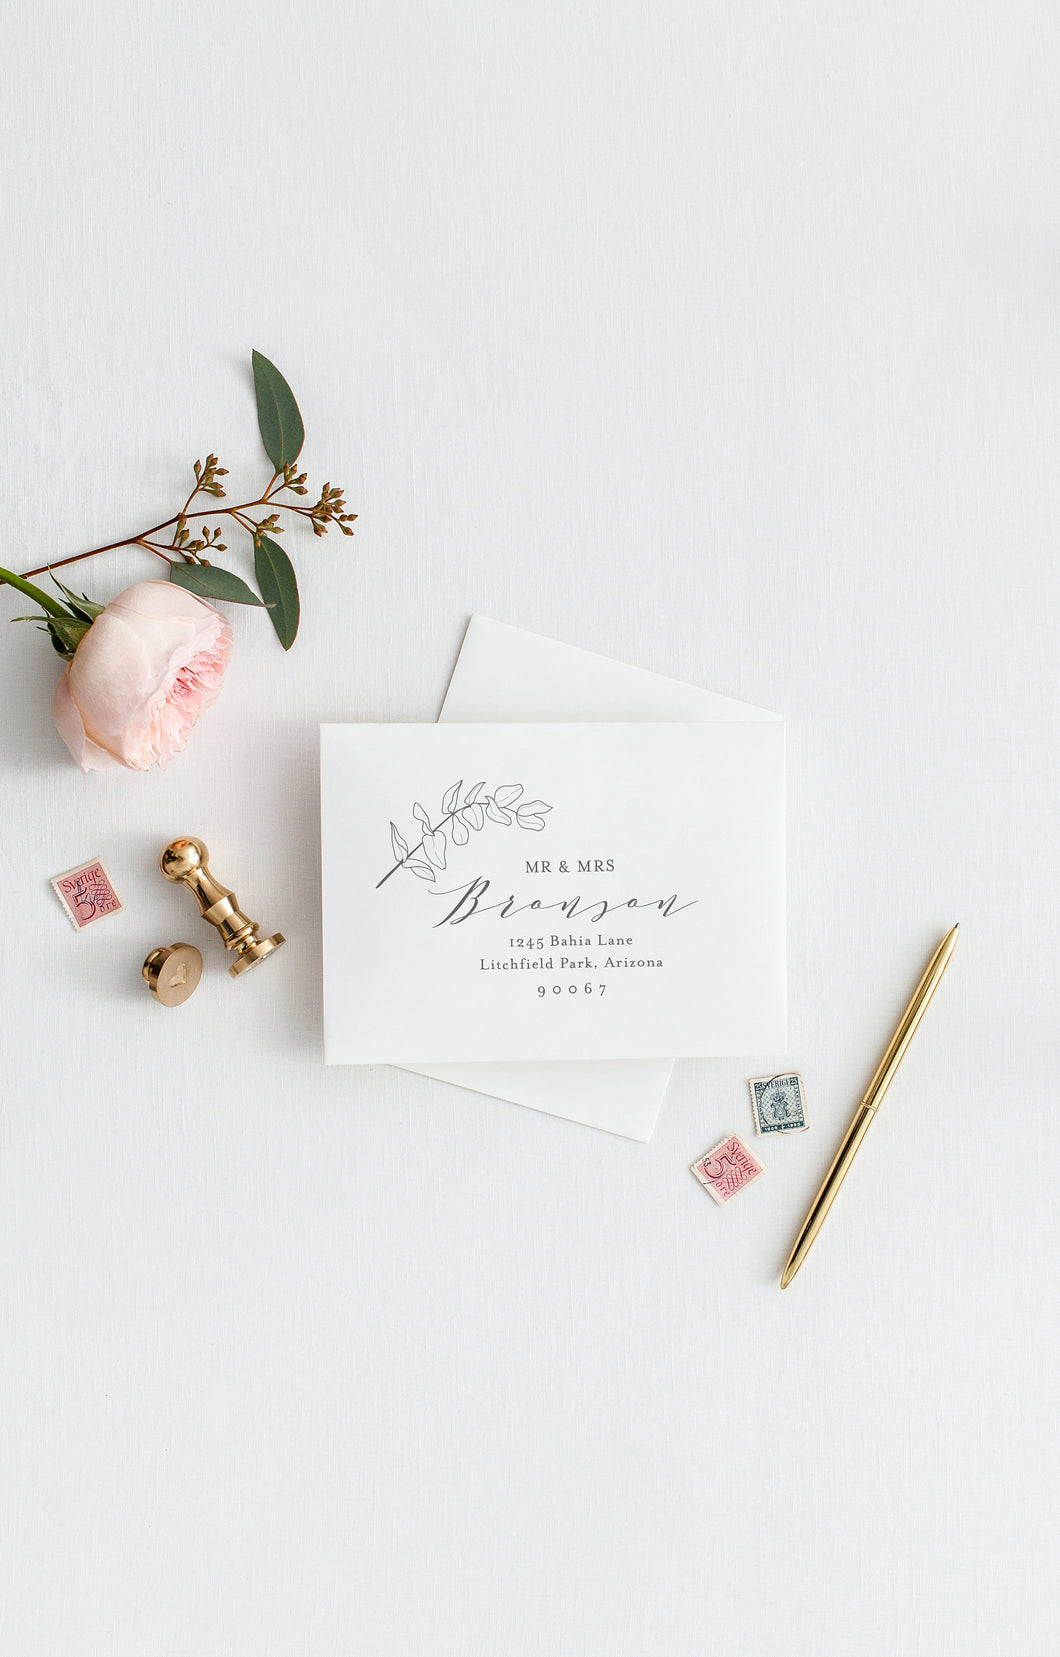 Envelope Addressing Template DIY Envelope Template for Wedding Printable Envelope for Save the Date Instant Download RSVP Envelope - Abi